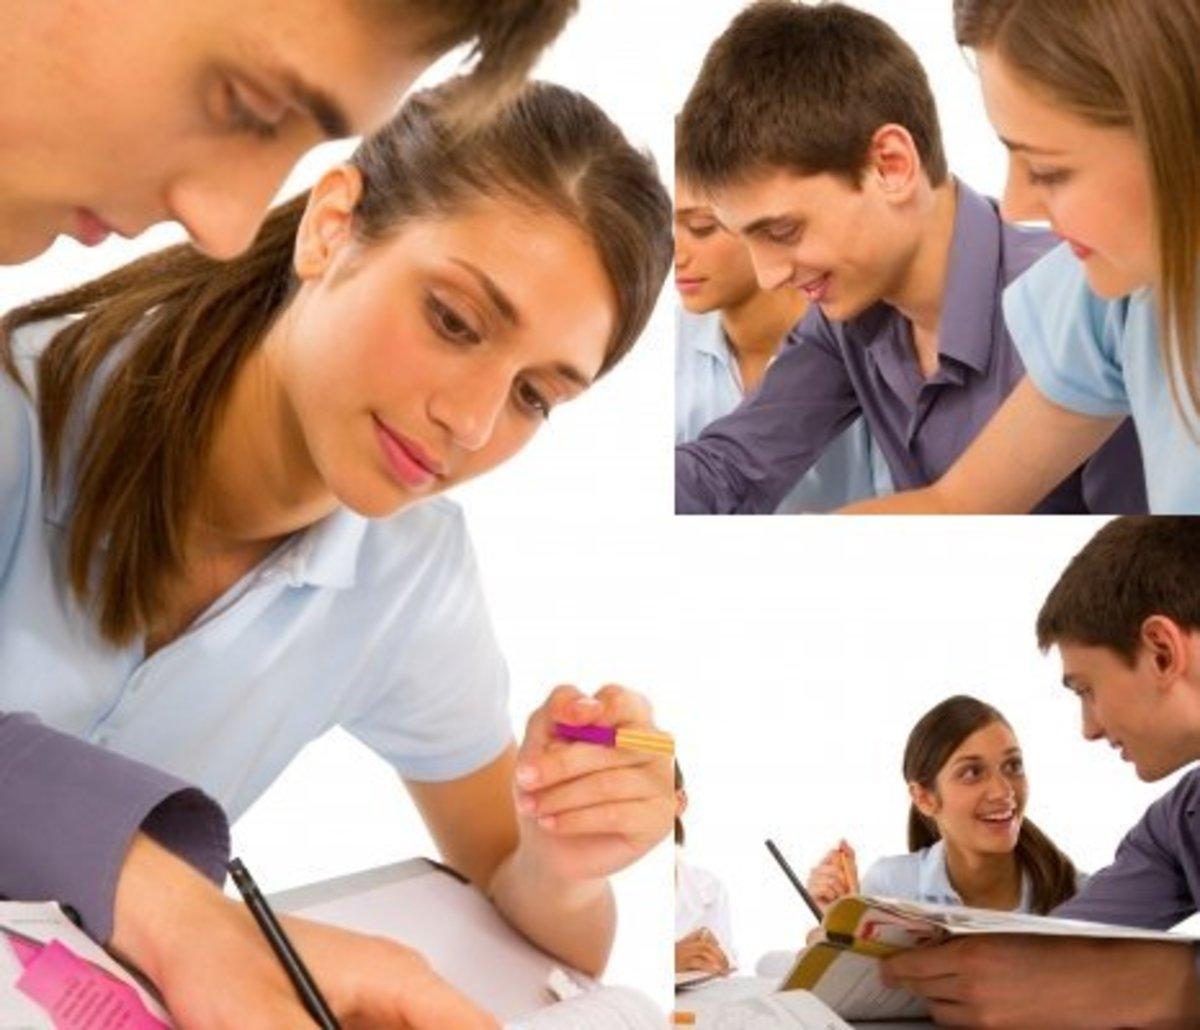 If you always offer your help too eagerly, your help will be taken for granted. For example, if you become the go-to guy for homework help, you will always remain the guy who can help out with homework.